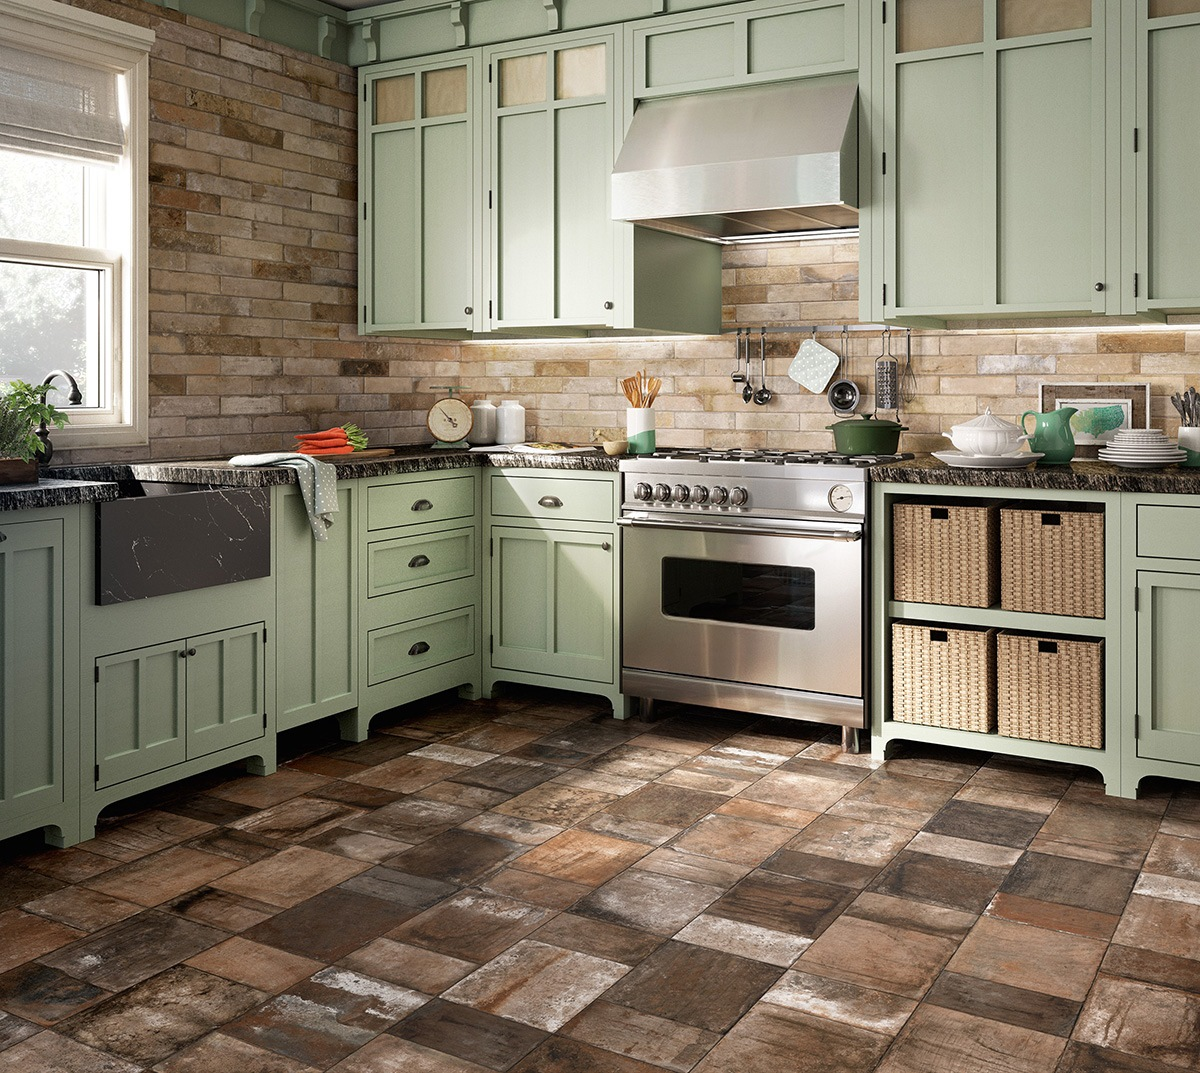 Porcelain stoneware floors in kitchen country style - Country style kitchens ...